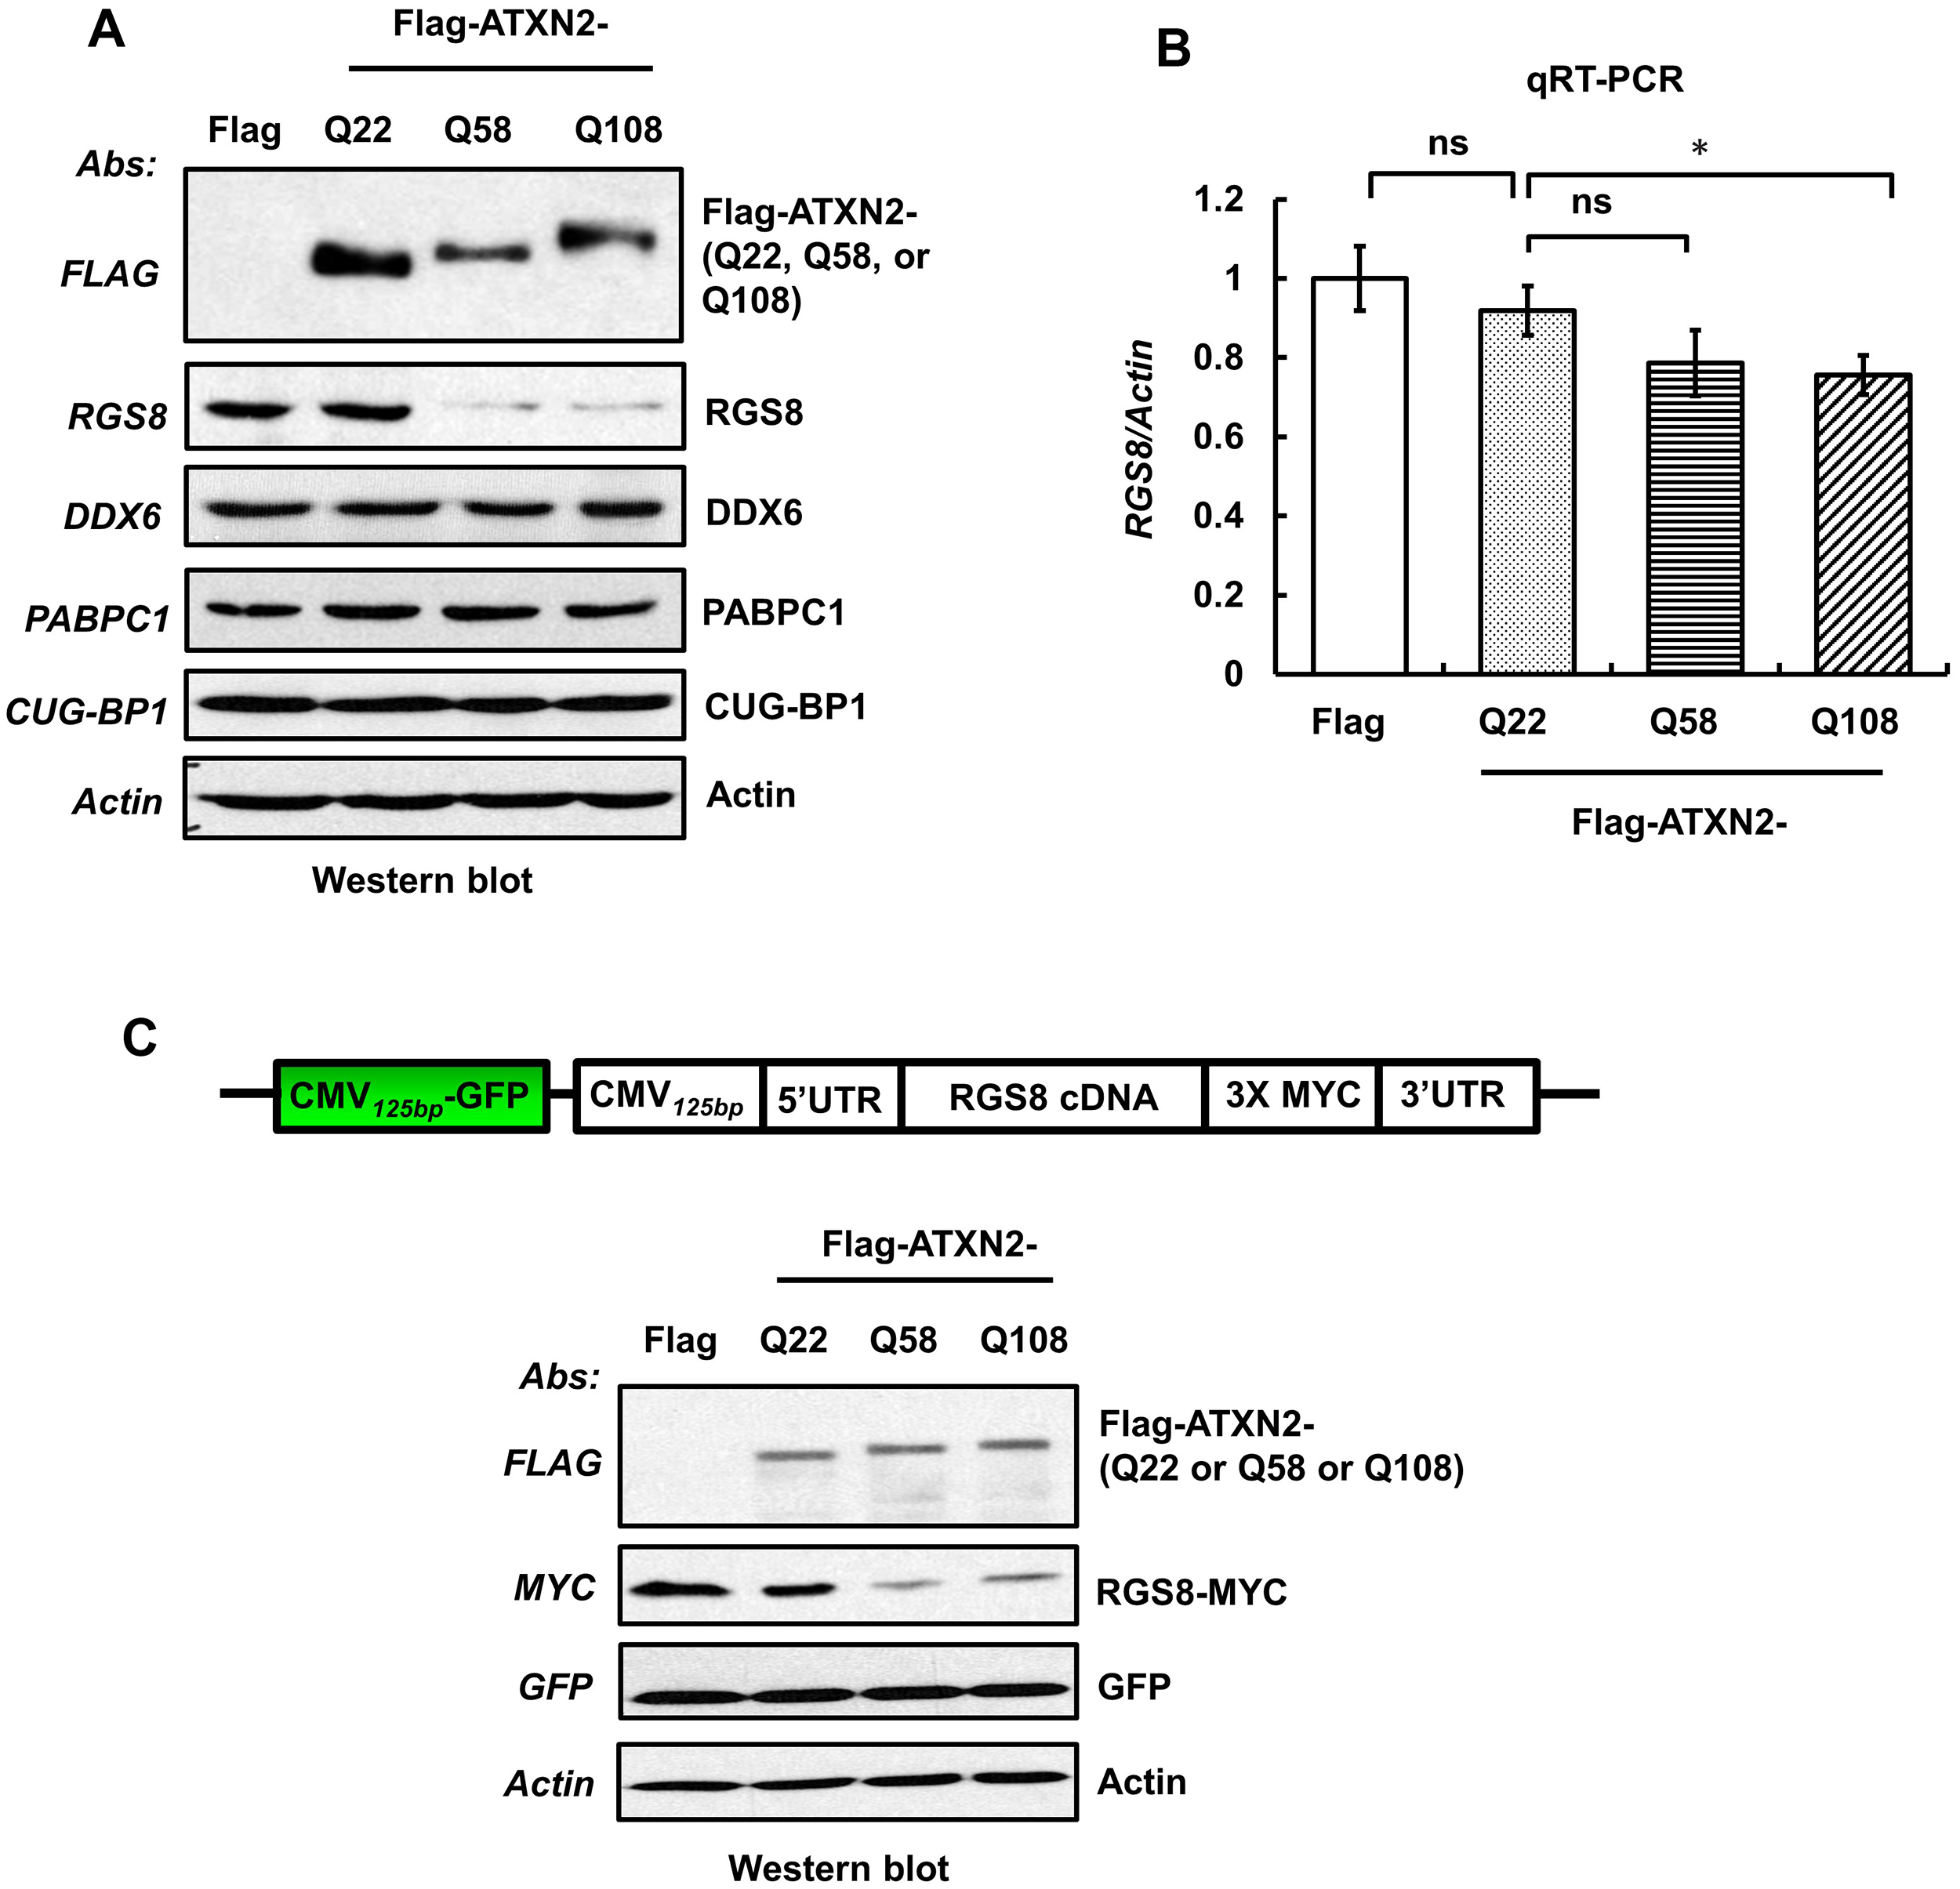 Overexpression of mutant ATXN2 in human SH-SY5Y cells recapitulates down-regulation of <i>in vivo</i> steady-state levels of Rgs8 in BAC-Q72 mice.